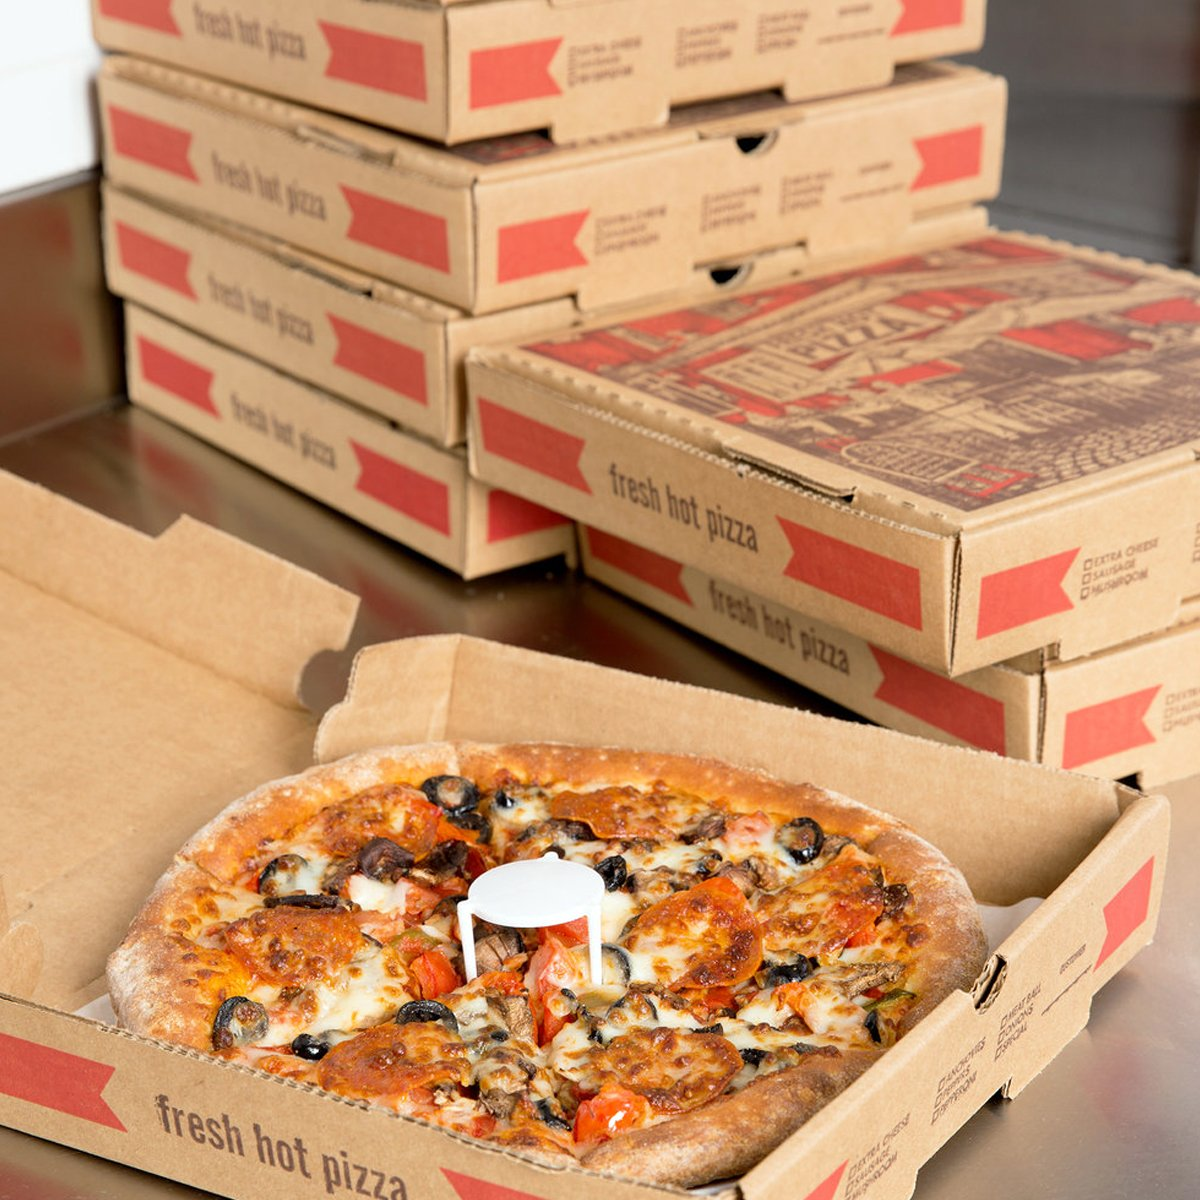 At the best packaging firm, the RSF Packaging, we ask you to join your hands to feel the best appearances, variety, and quality of pizza boxes.  https://bit.ly/370QOD7 #CustomPizzaBoxes #PizzaBoxes #PizzaBoxesWholesale #WholesalePizzaBoxepic.twitter.com/alT1IWSl5u